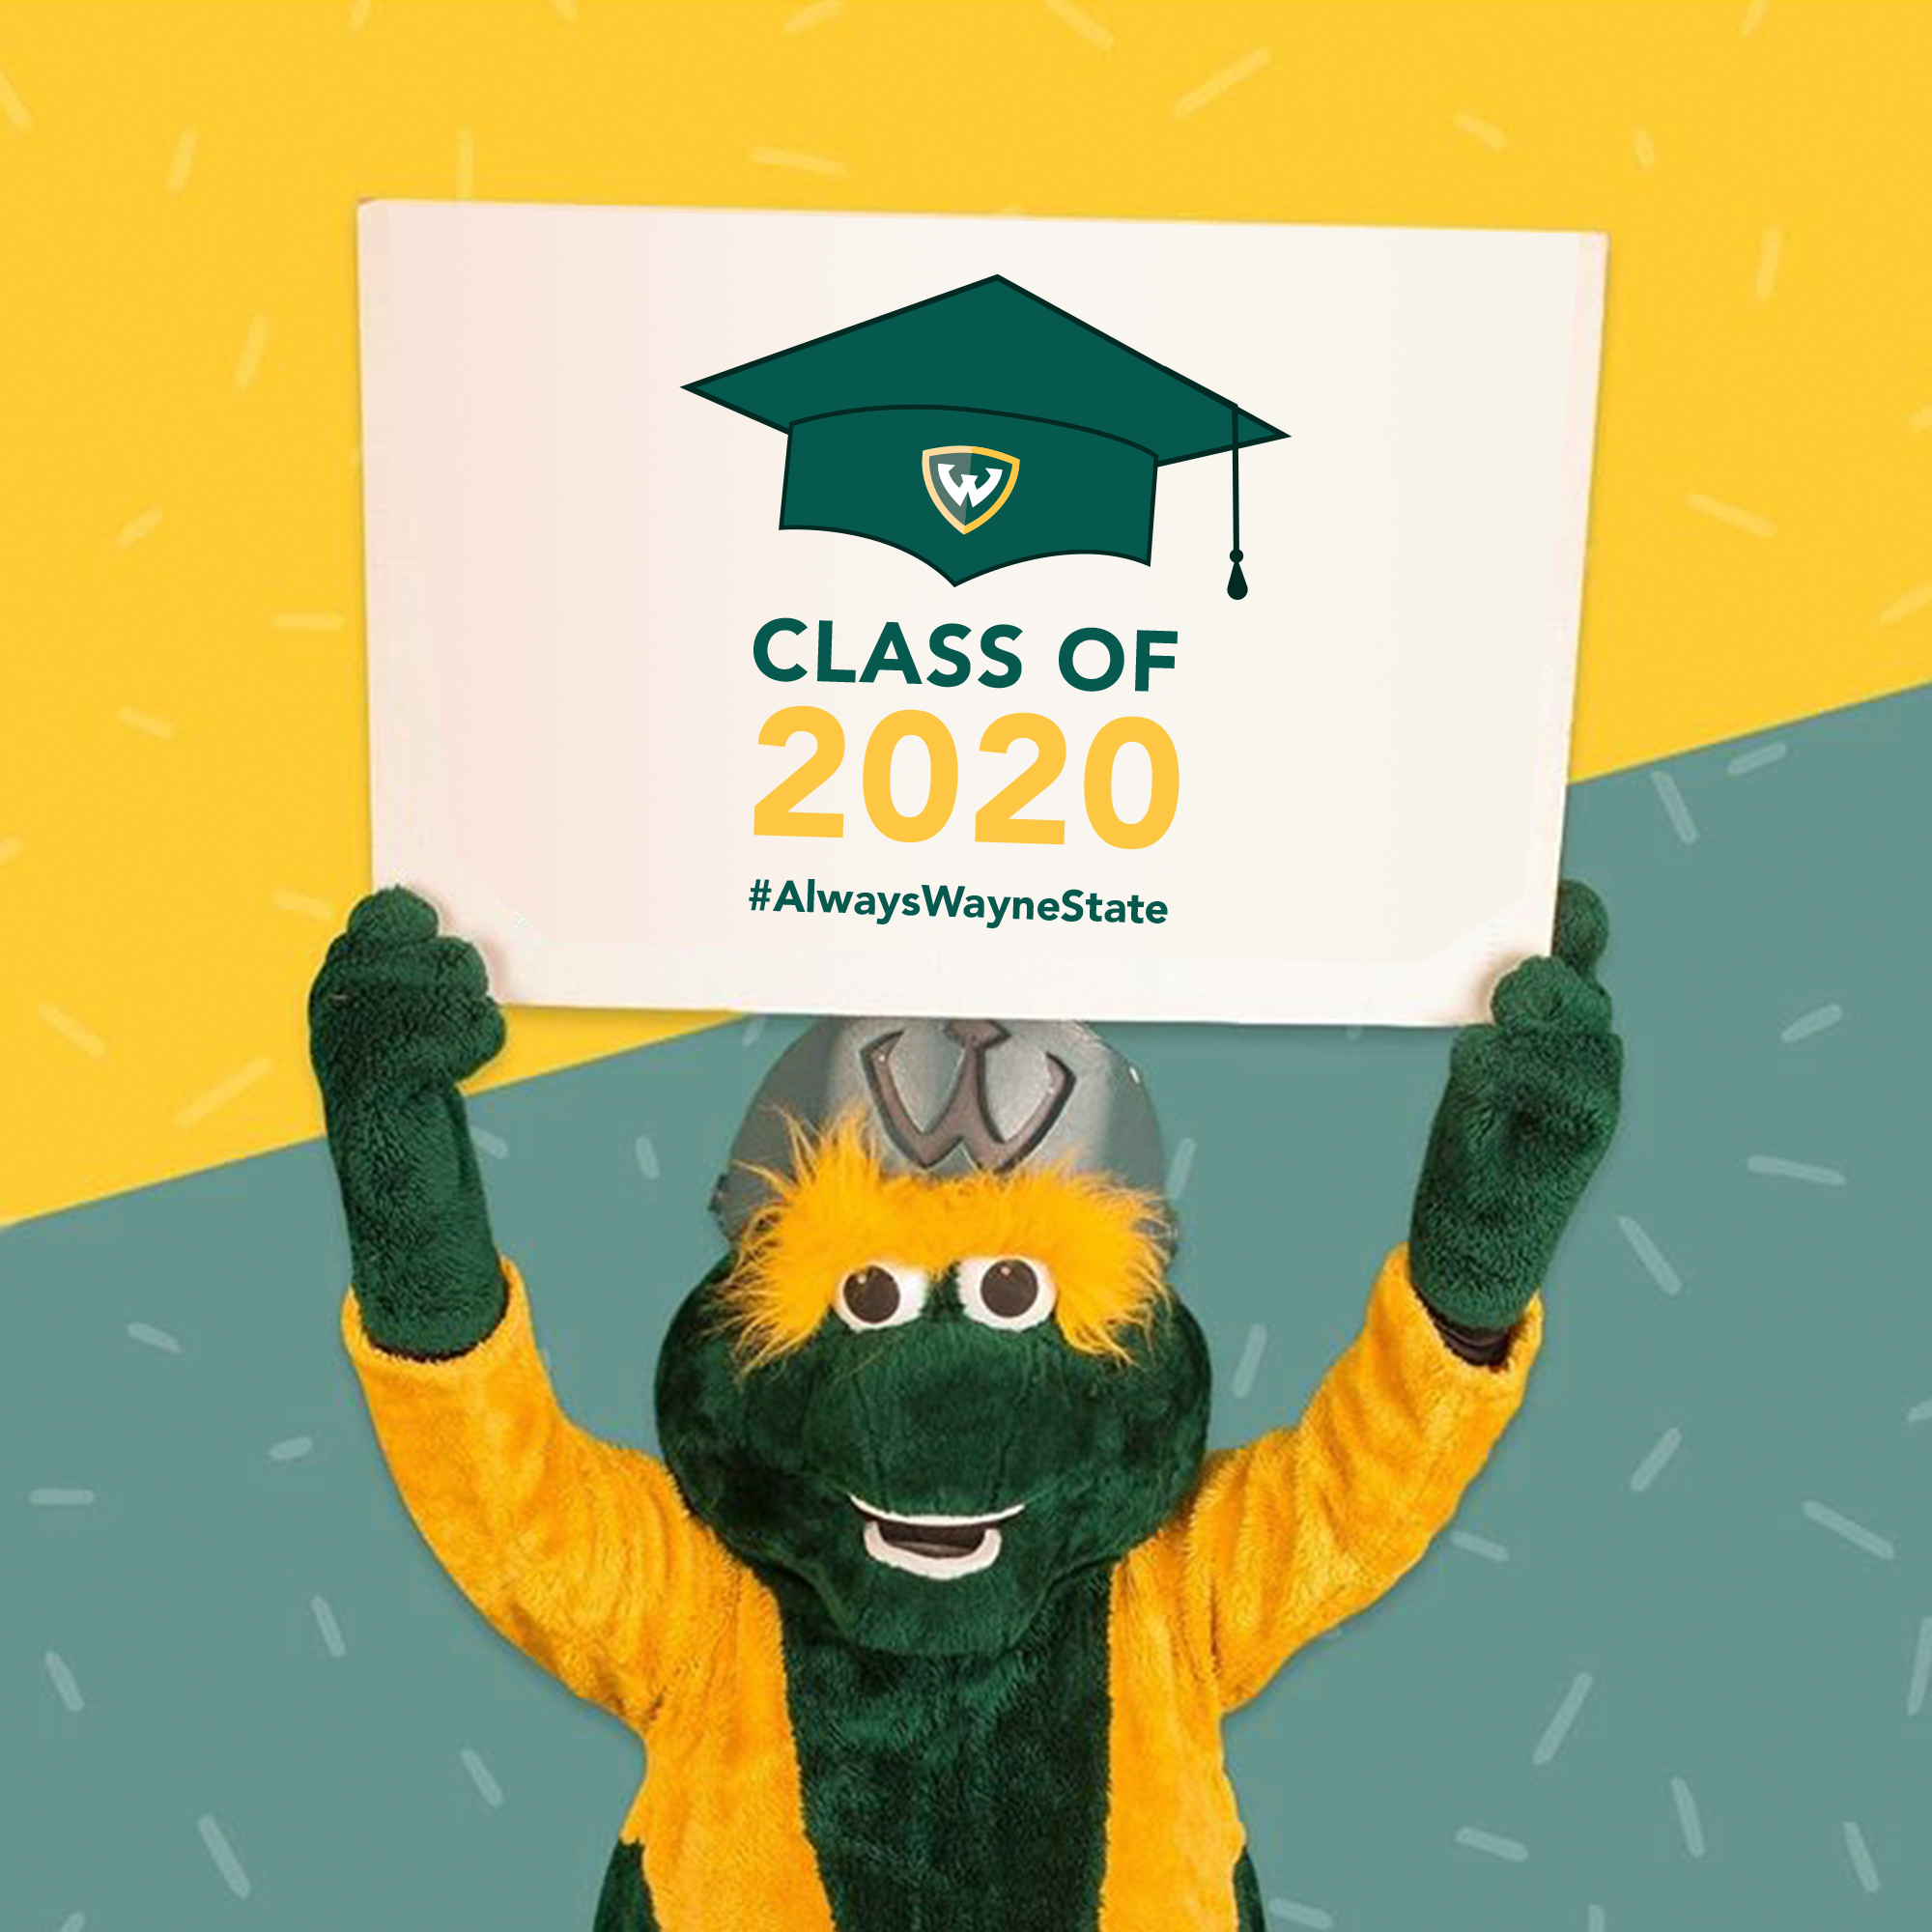 Mascot W holding Class of 2020 sign